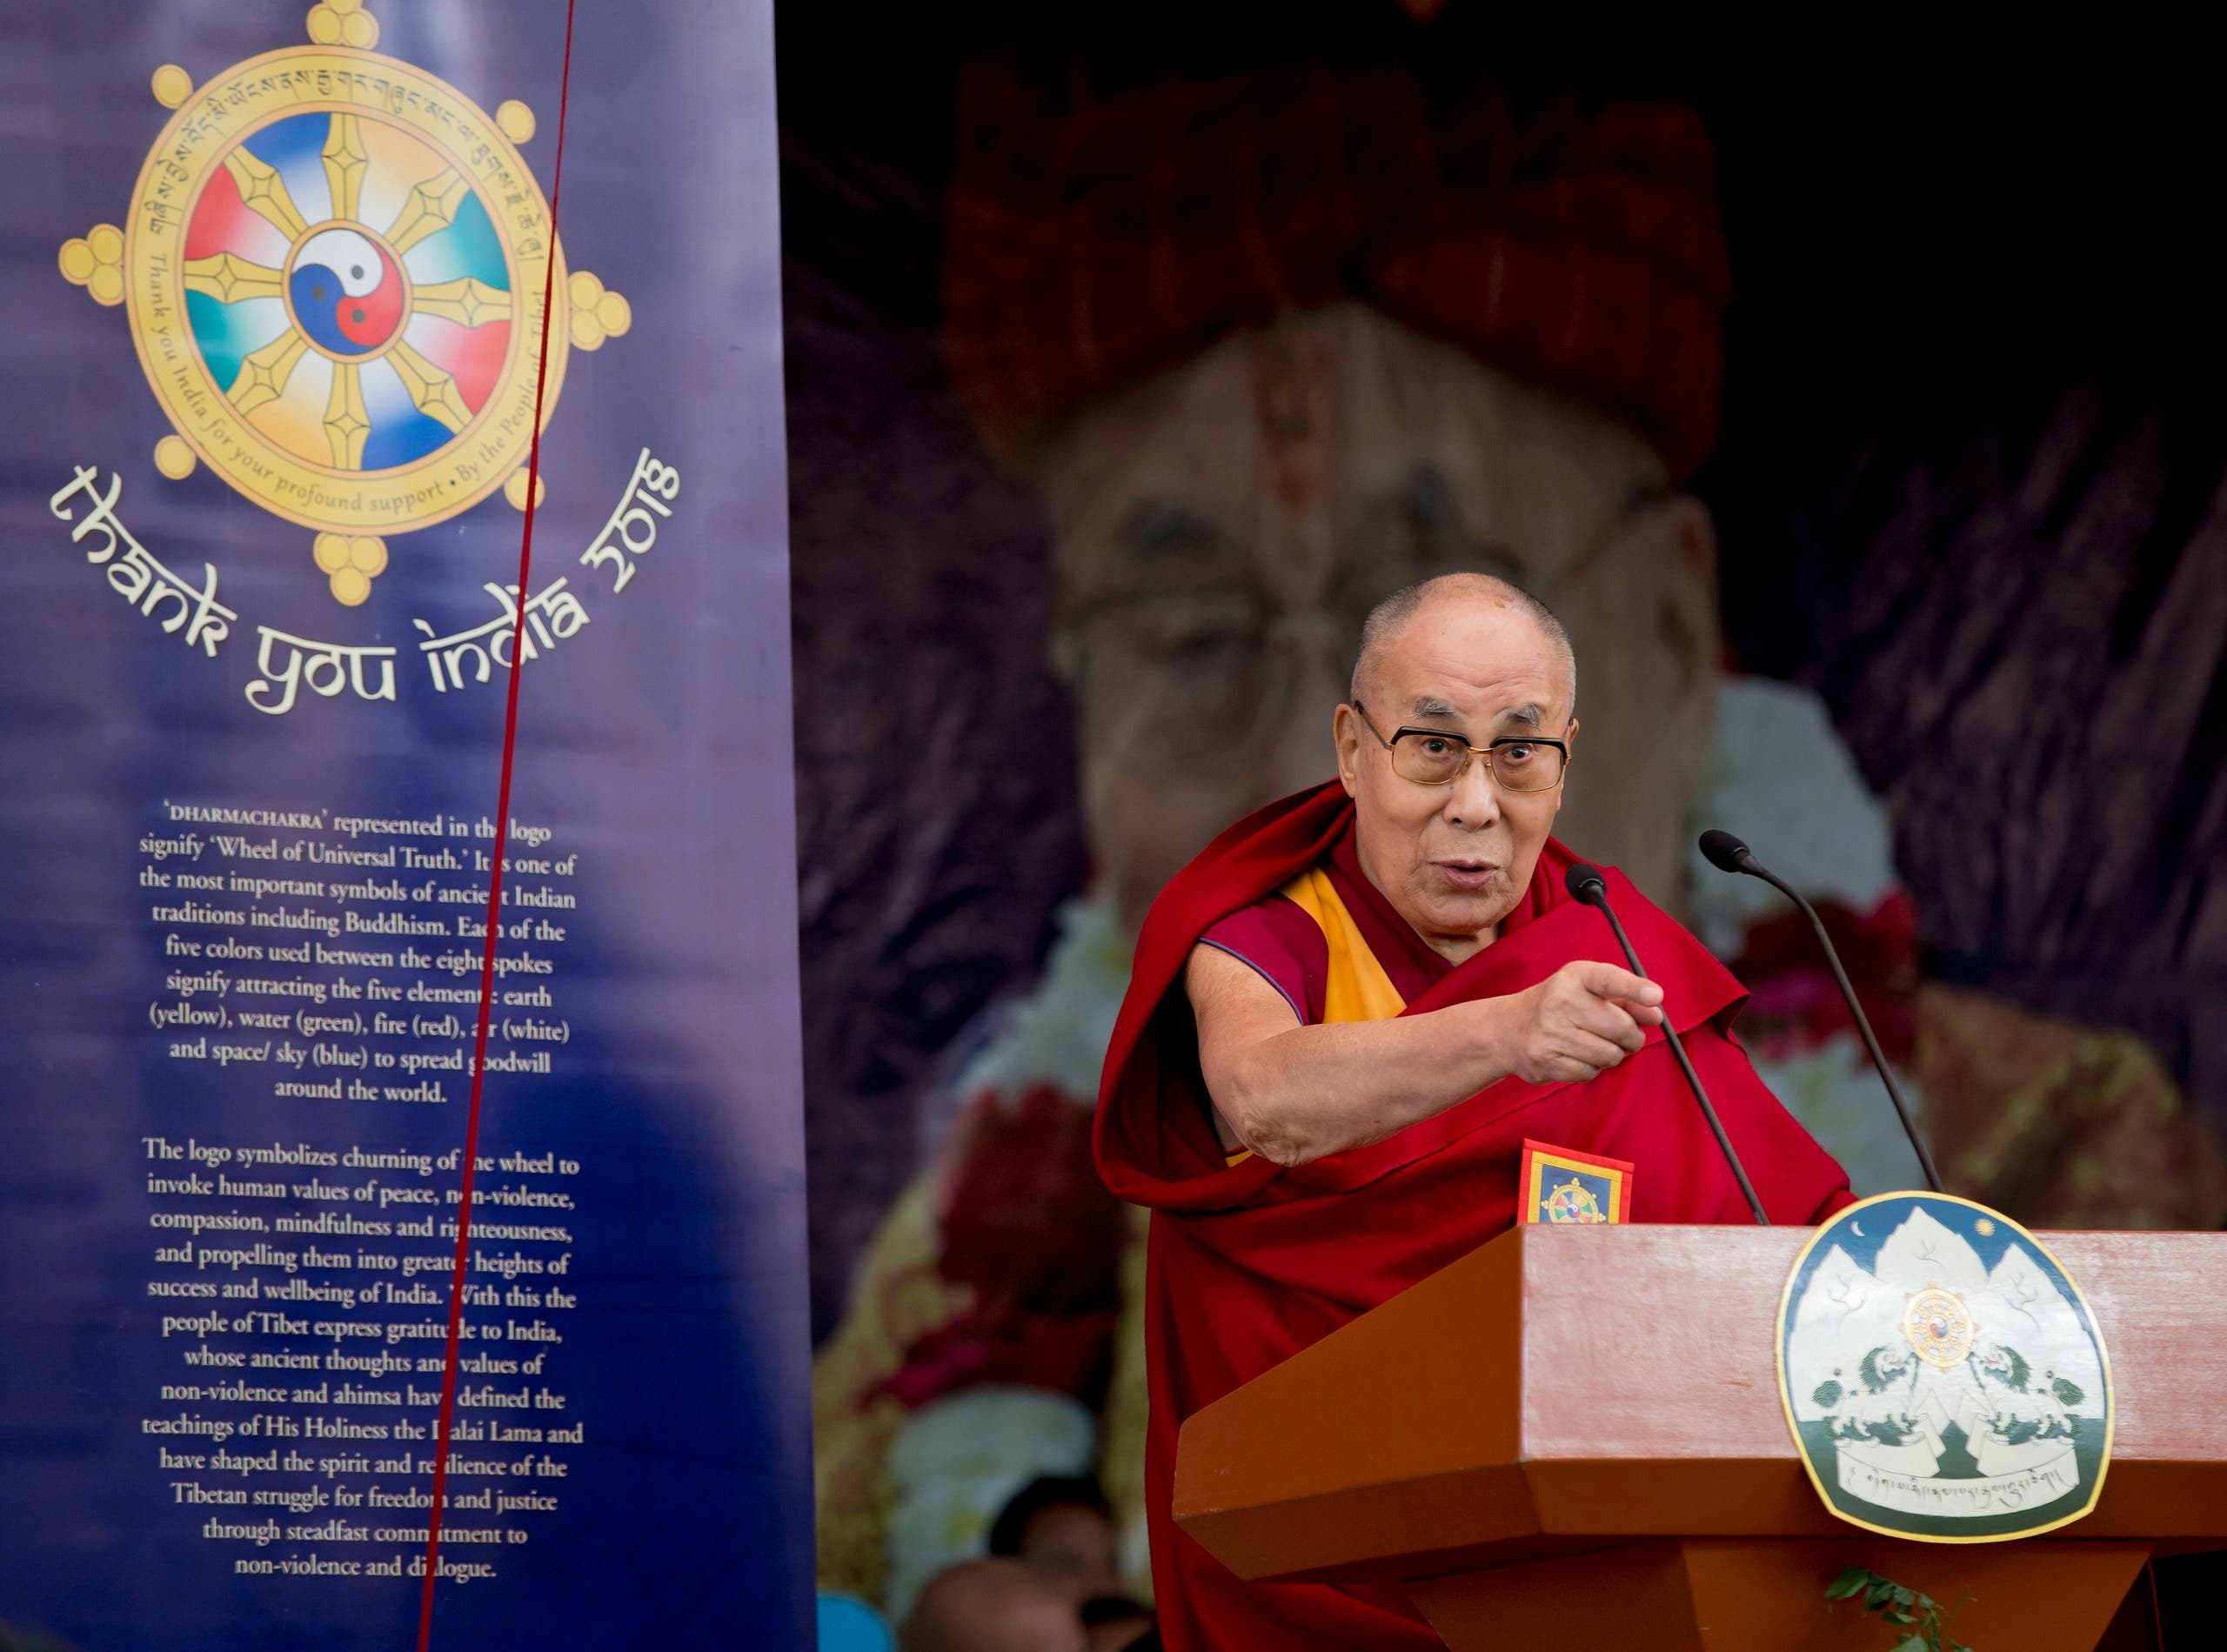 Tibetan spiritual leader the Dalai Lama speaks at an event marking the beginning of the 60th year of the spiritual leader's exile in India, in Dharmsala, on March 31, 2018. (AP)